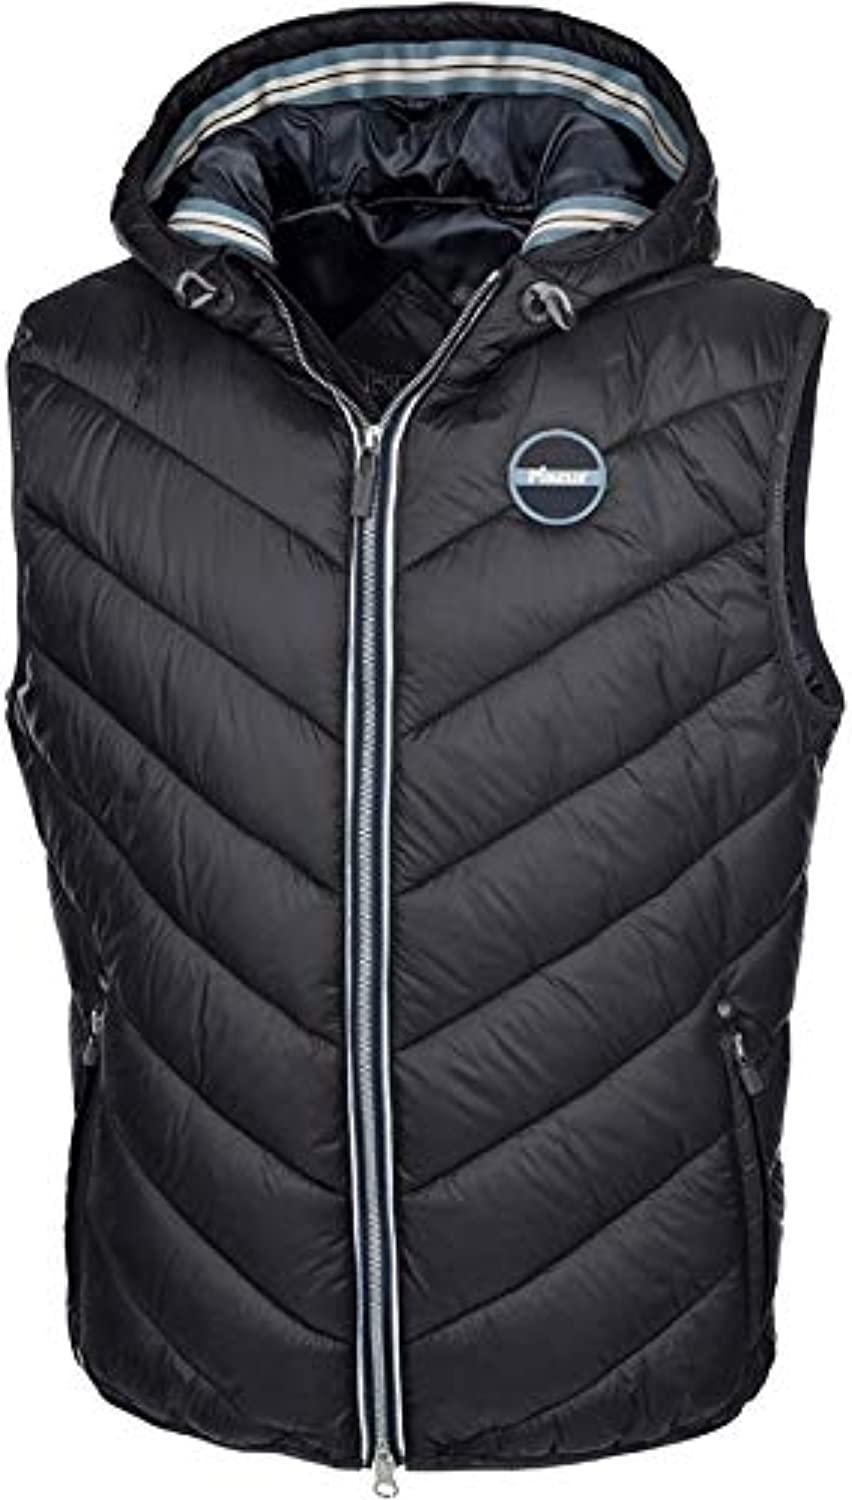 Pikeurmens quilted waistcoat ARCOWINTER 2018